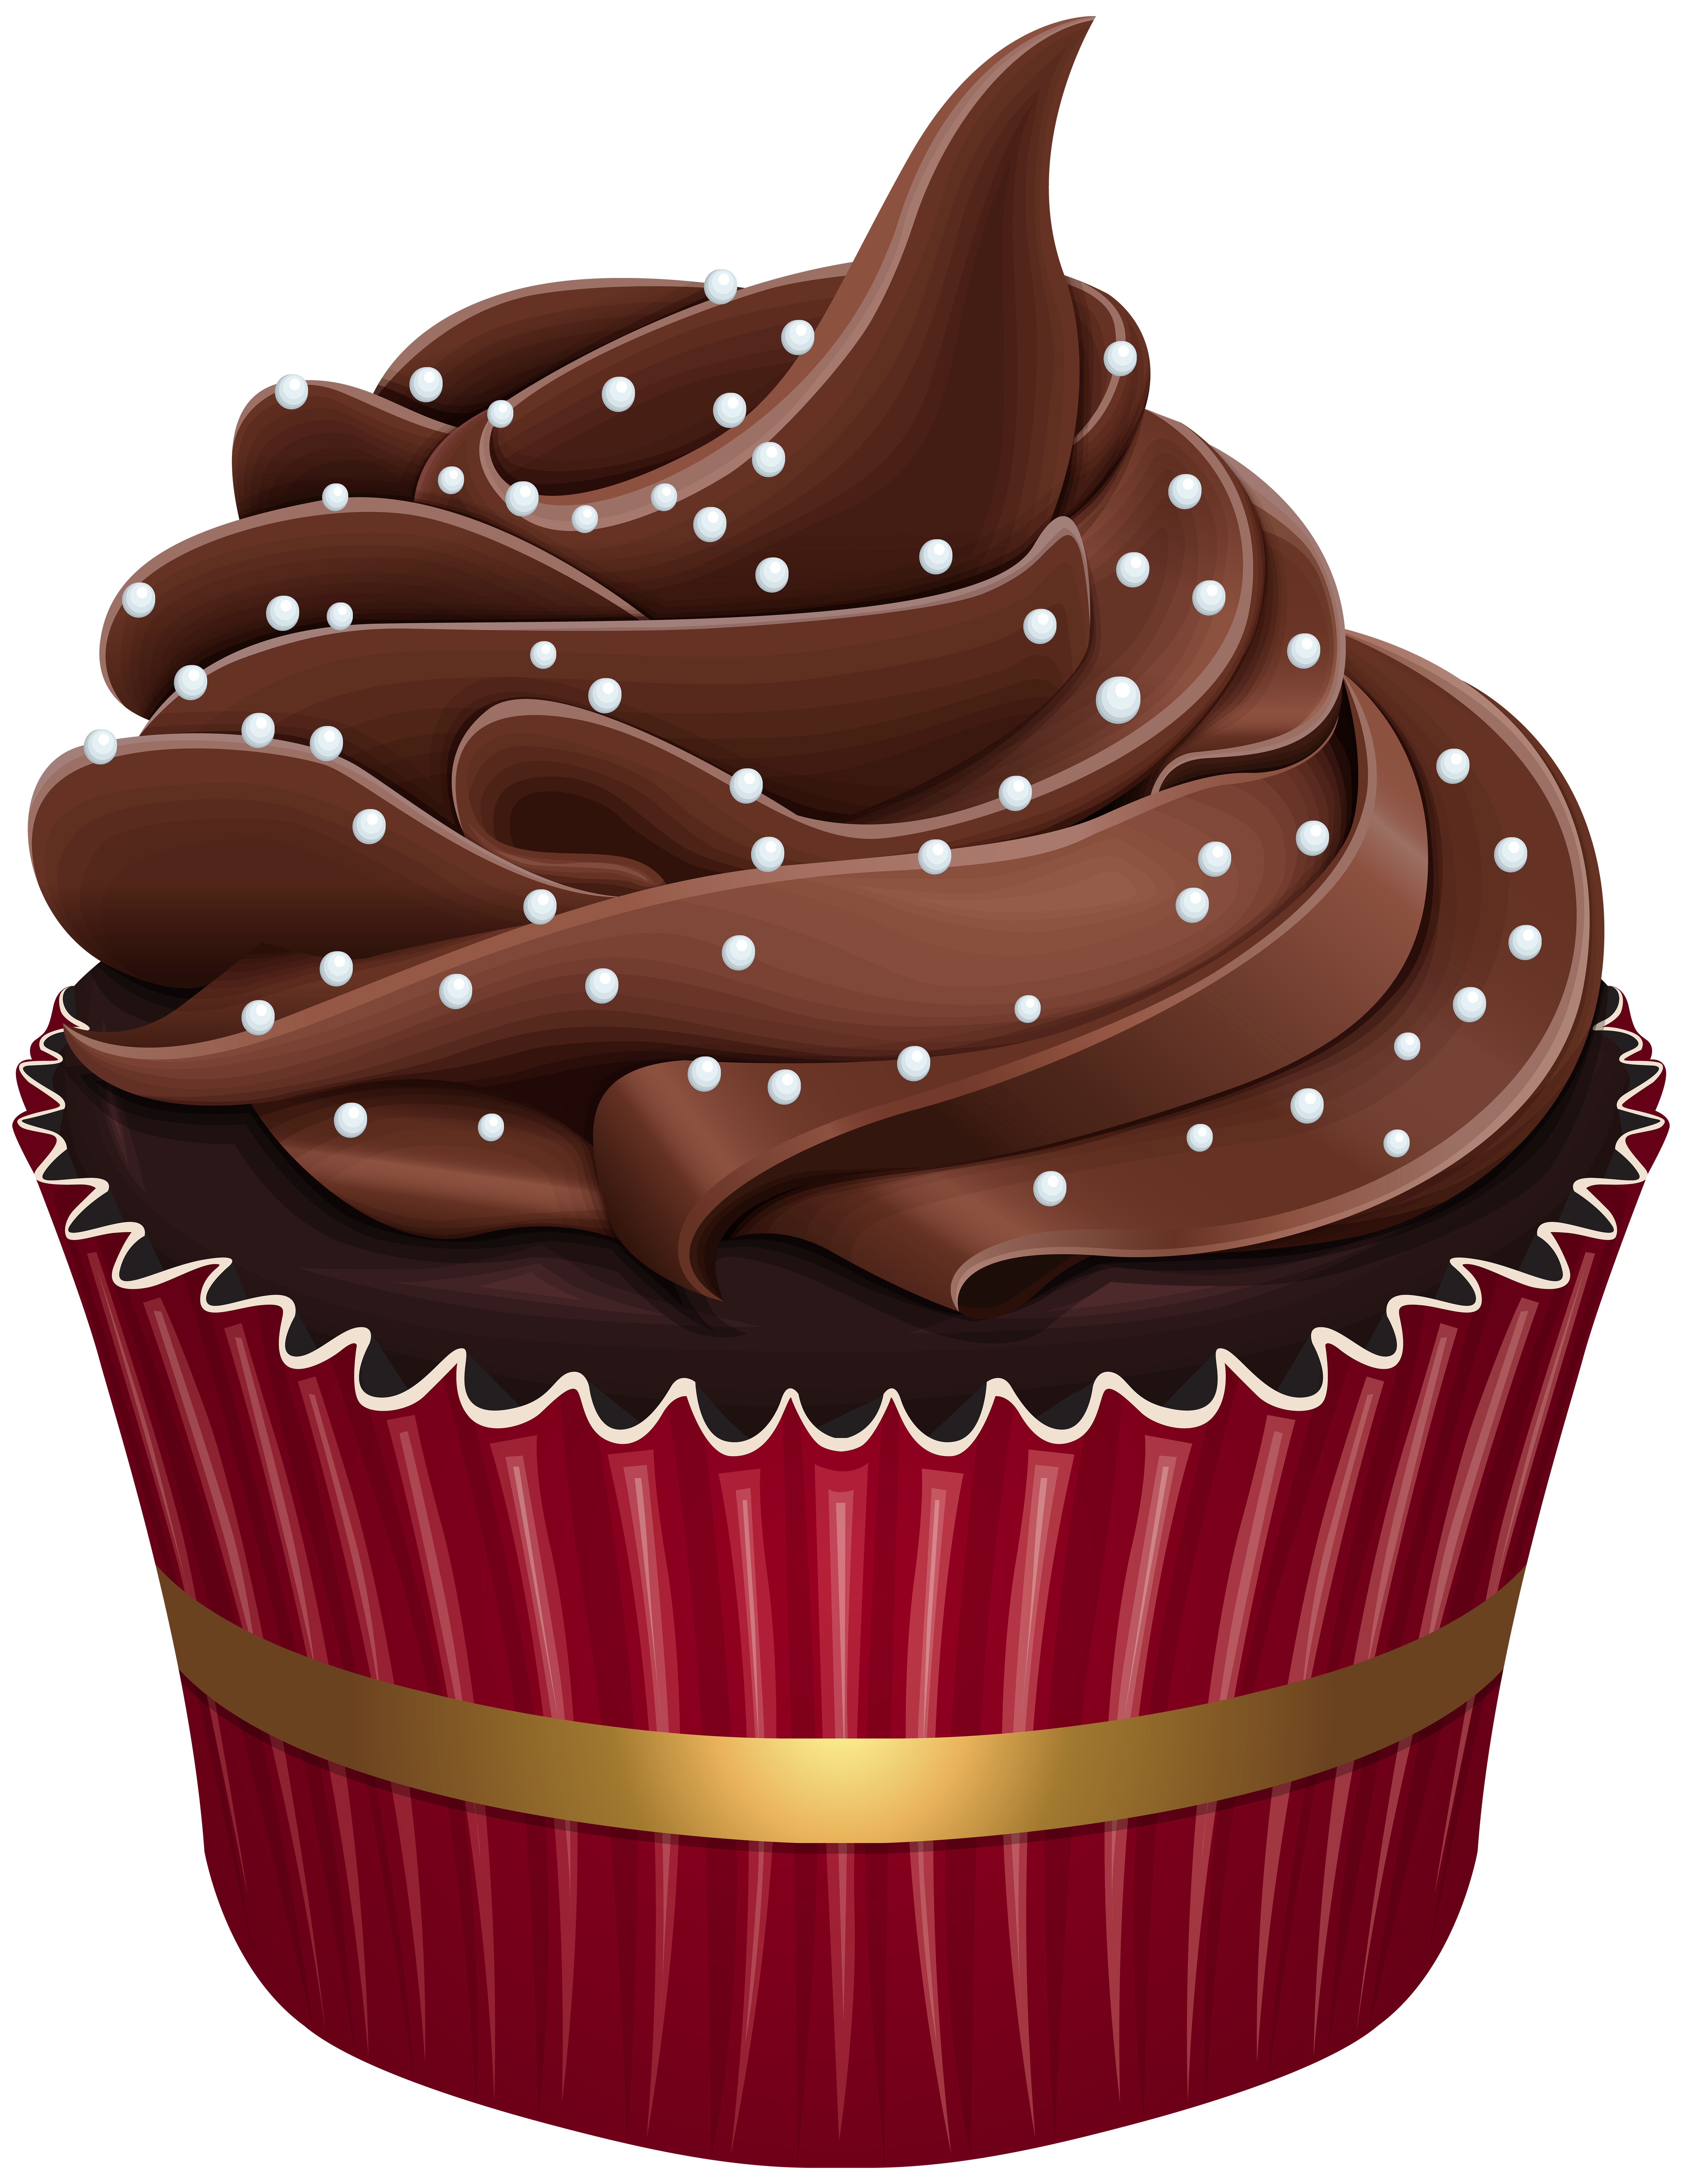 Browncupcake clipart picture black and white library Cupcake Muffin Torta Clip art - cupcakes clipart png download - 6163 ... picture black and white library